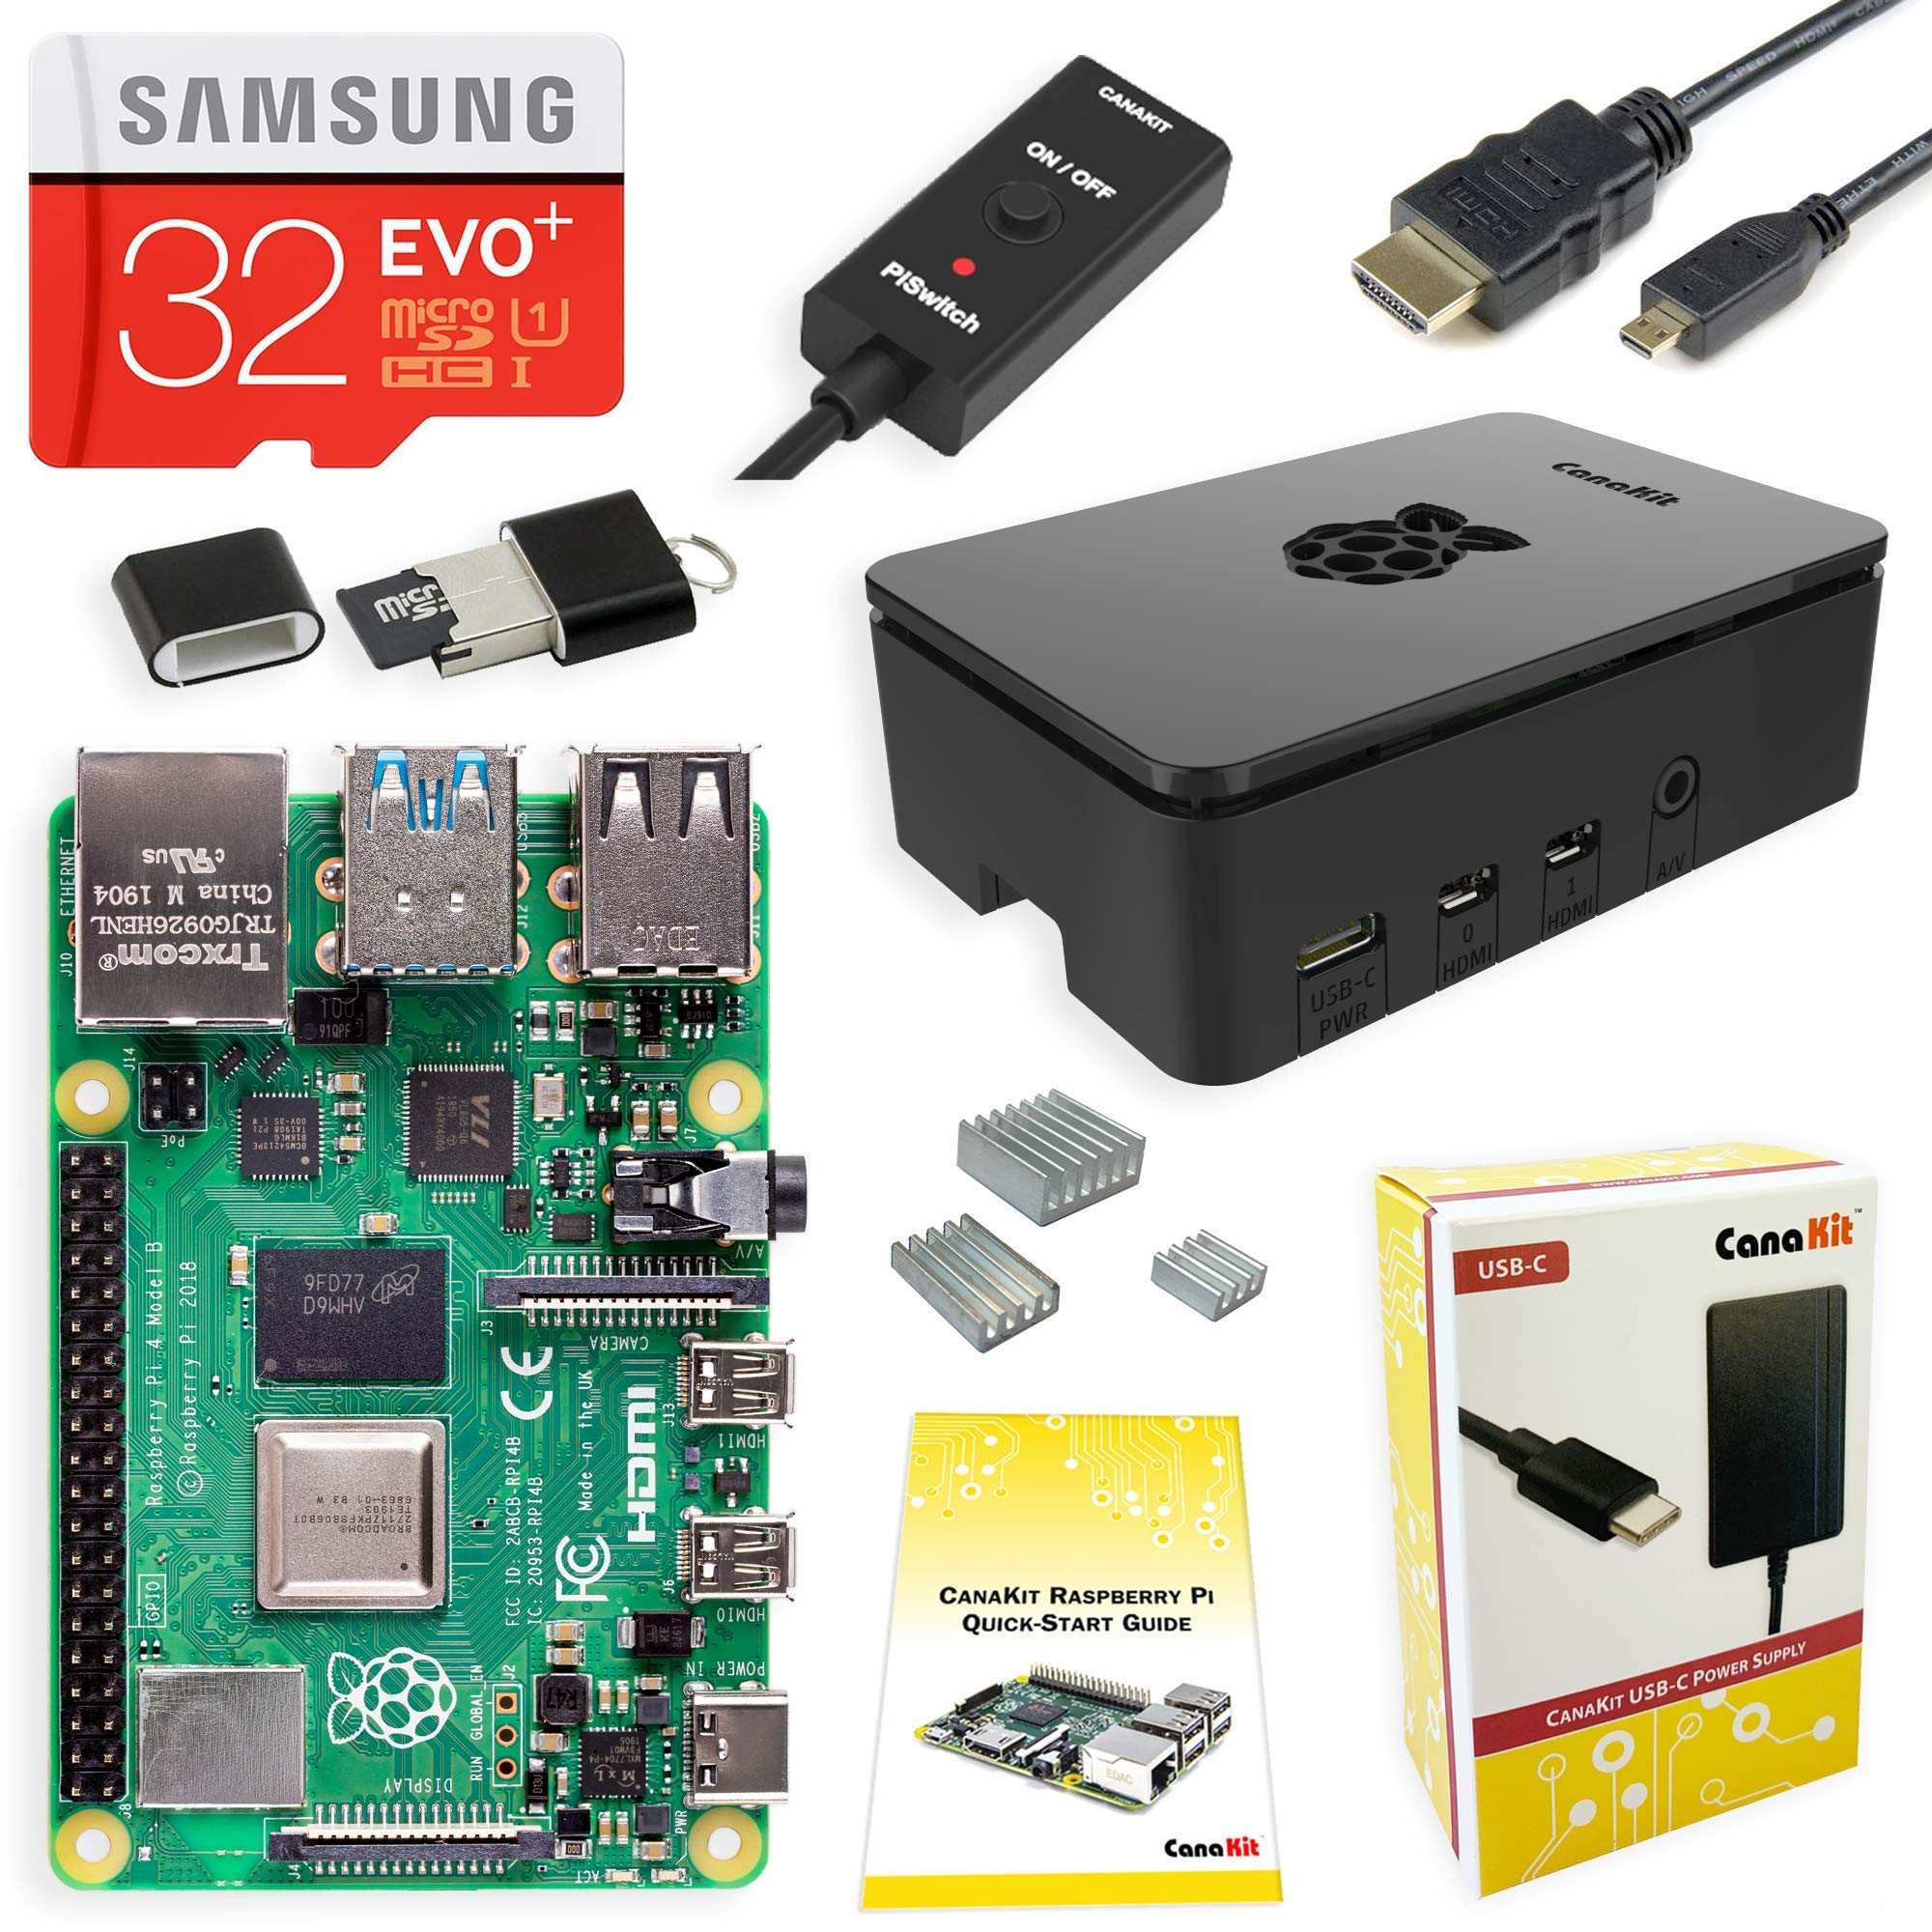 CanaKit Raspberry Pi 4 4GB Starter Kit - 4GB RAM by CanaKit